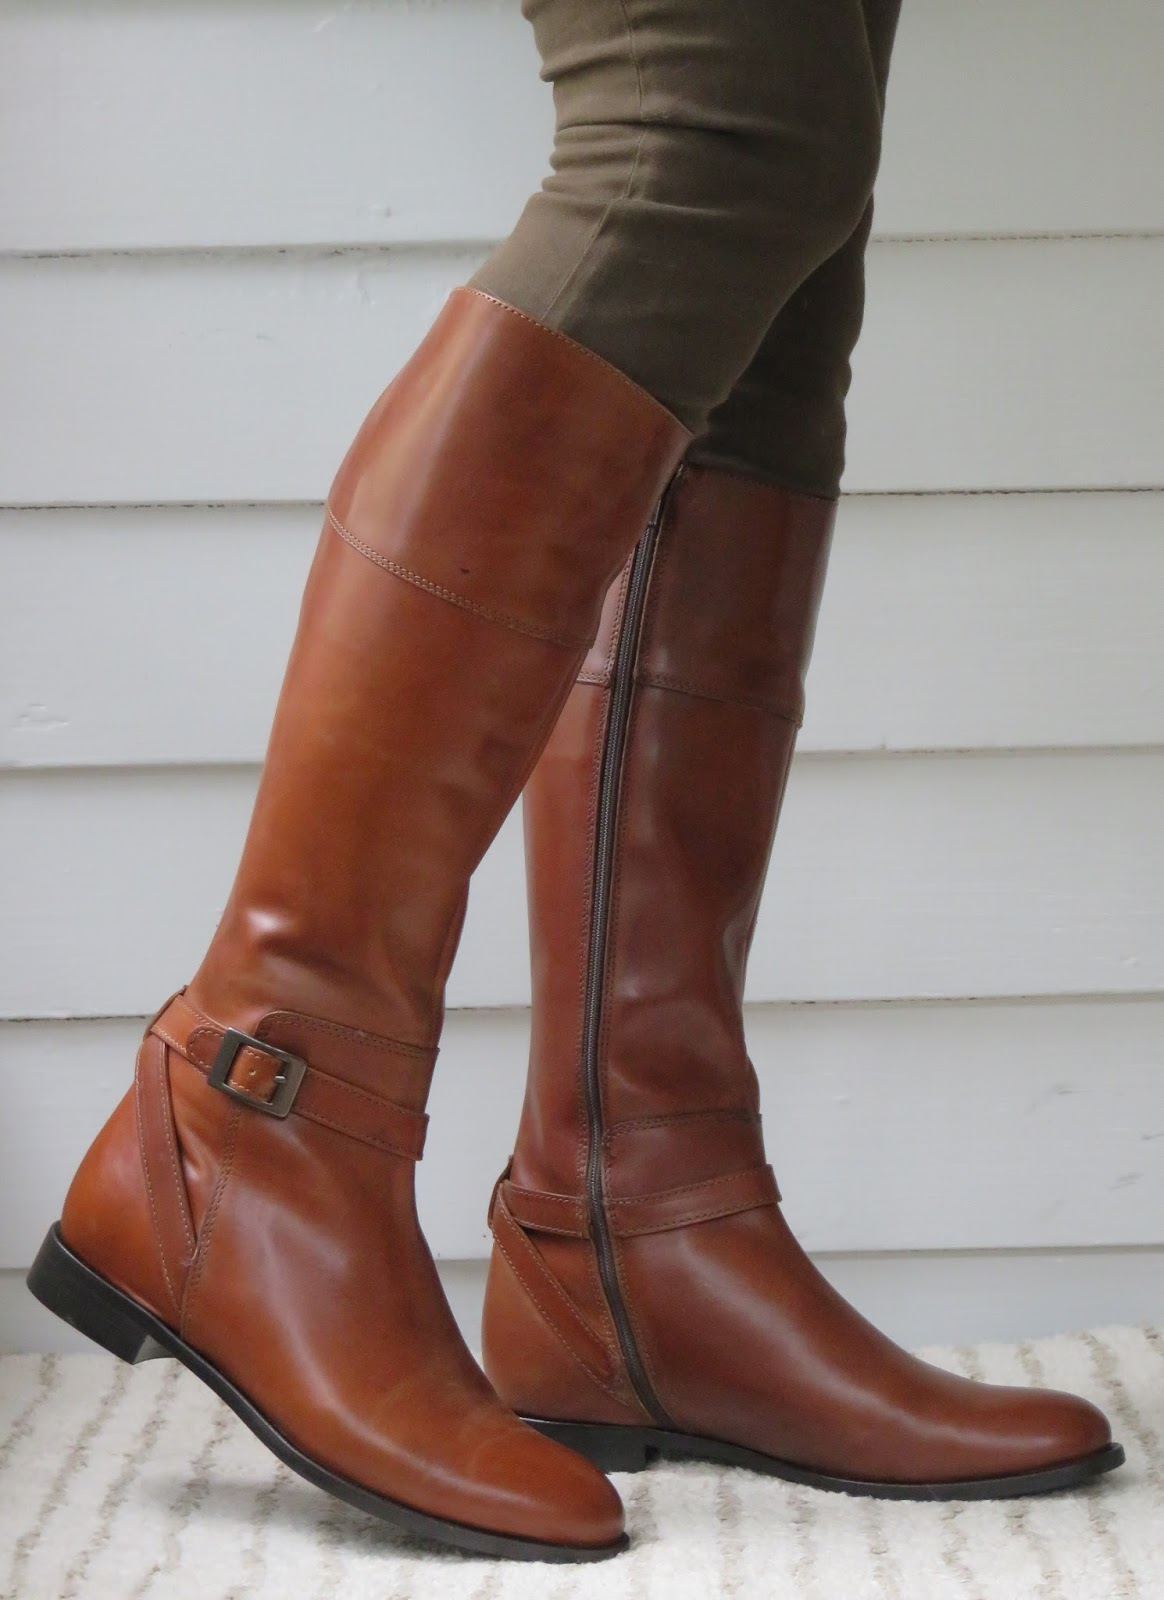 0ce39423b87 The Skinnycalf Rider is a luxurious made-in-Italy boot that offers a good  value for the price